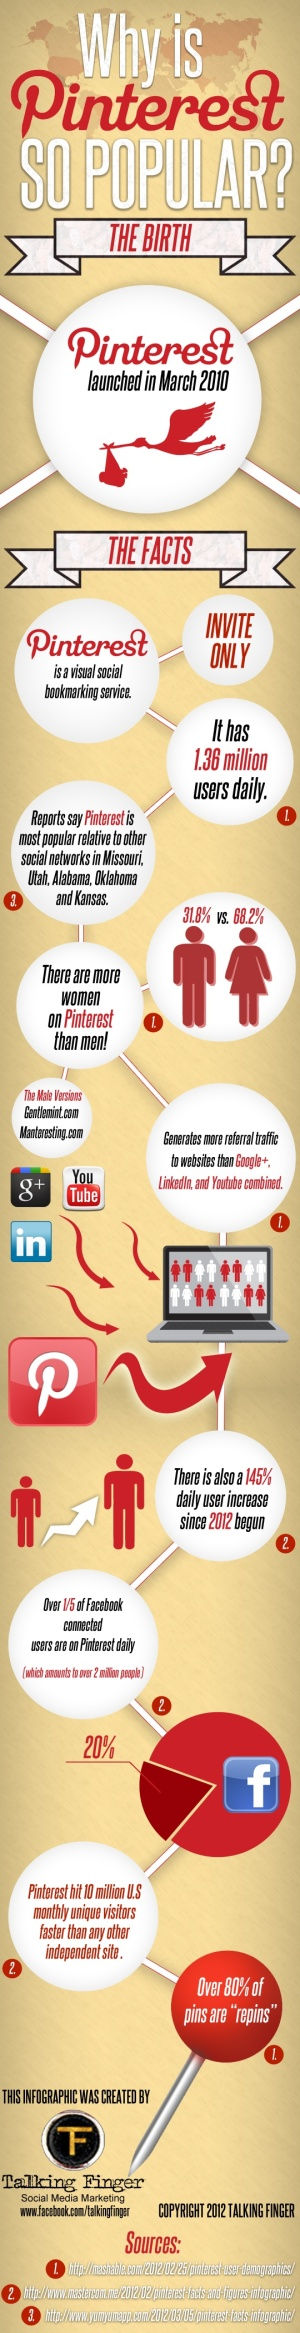 Why is pinterest so popular?